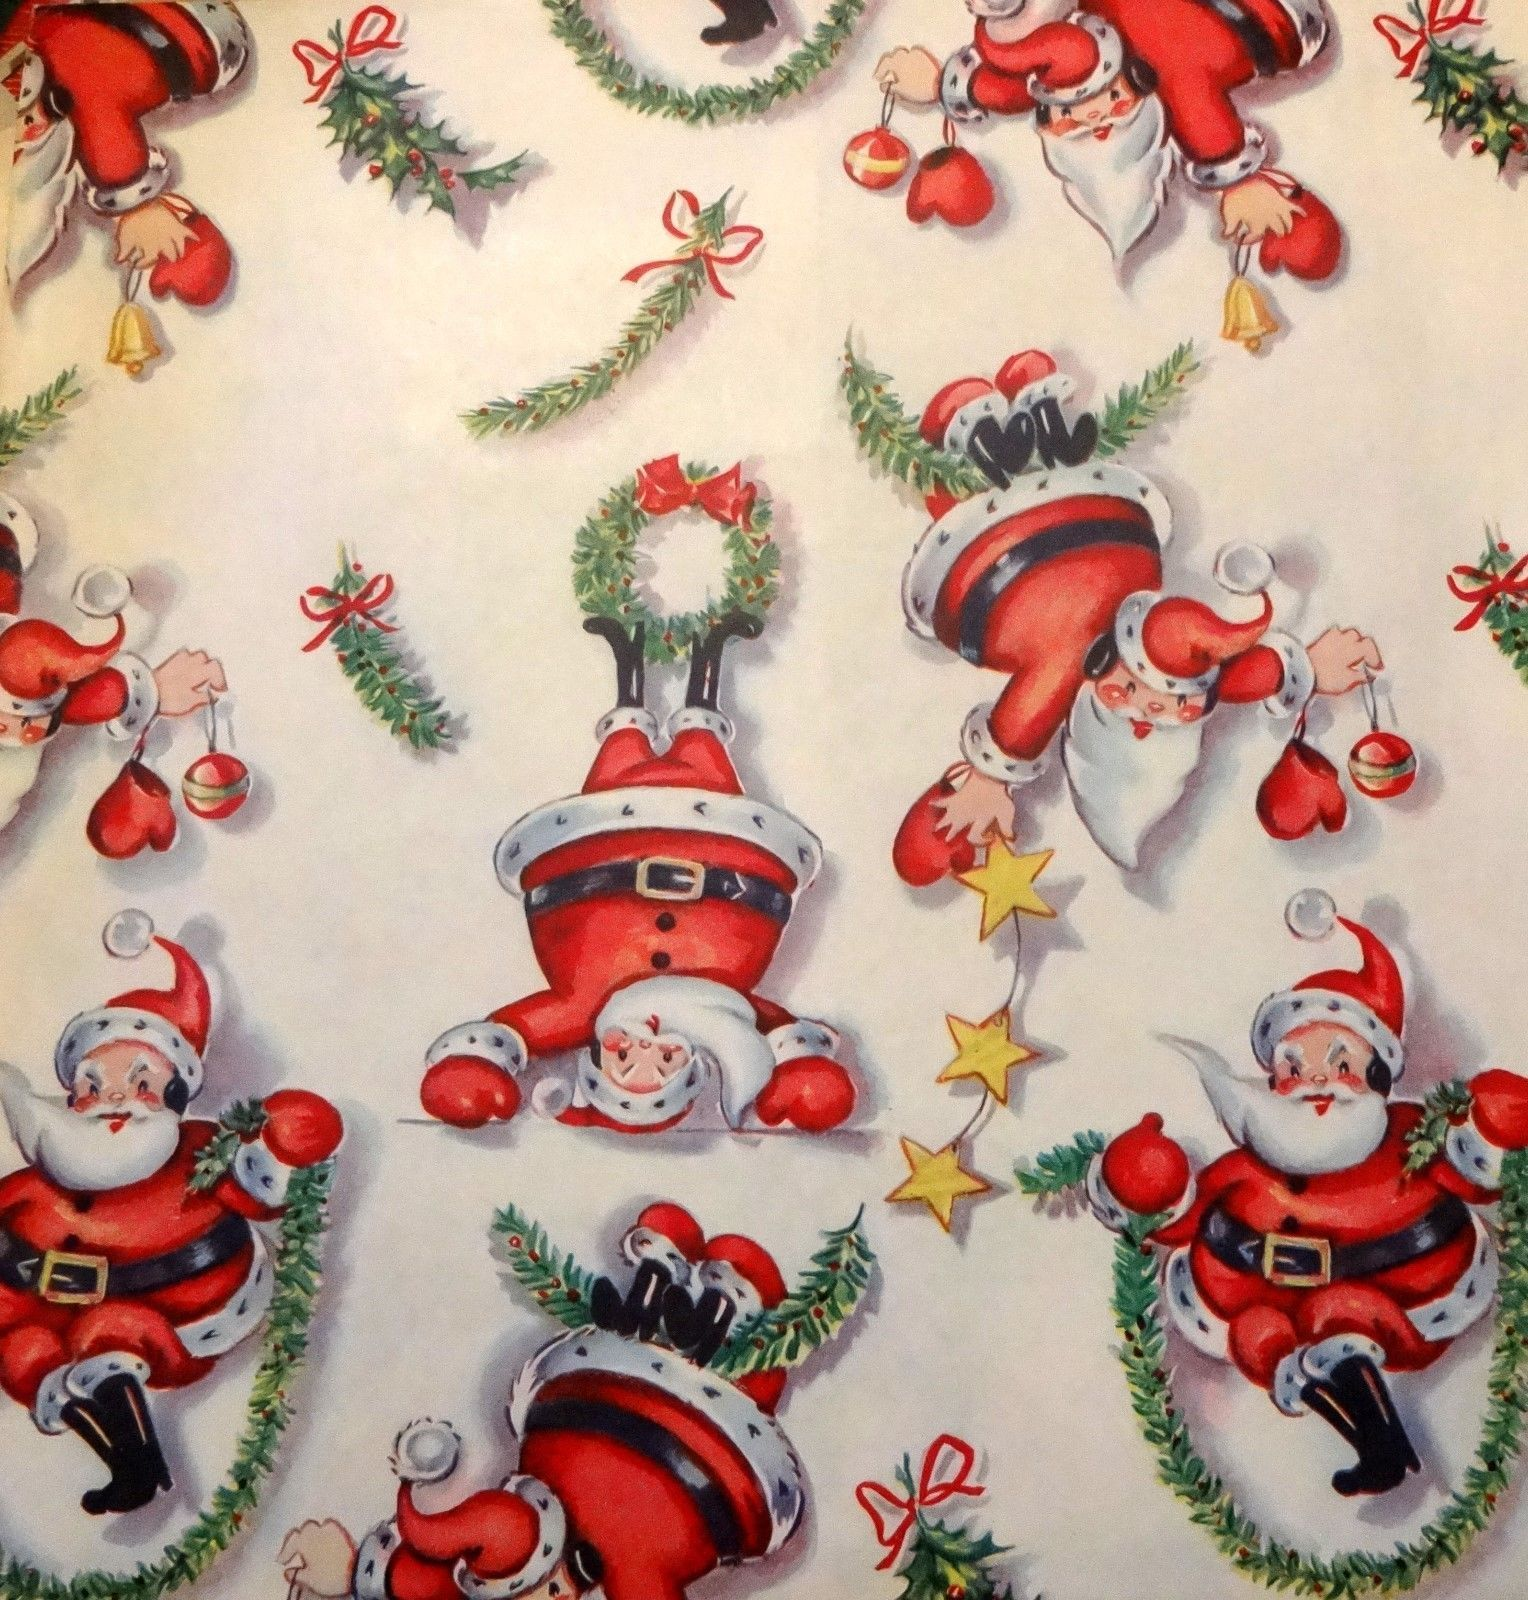 Vintage 1950 S Christmas Wrapping Paper Athletic Santa Nos Vintage Christmas Wrapping Paper Xmas Wrapping Paper Christmas Wrapping Paper